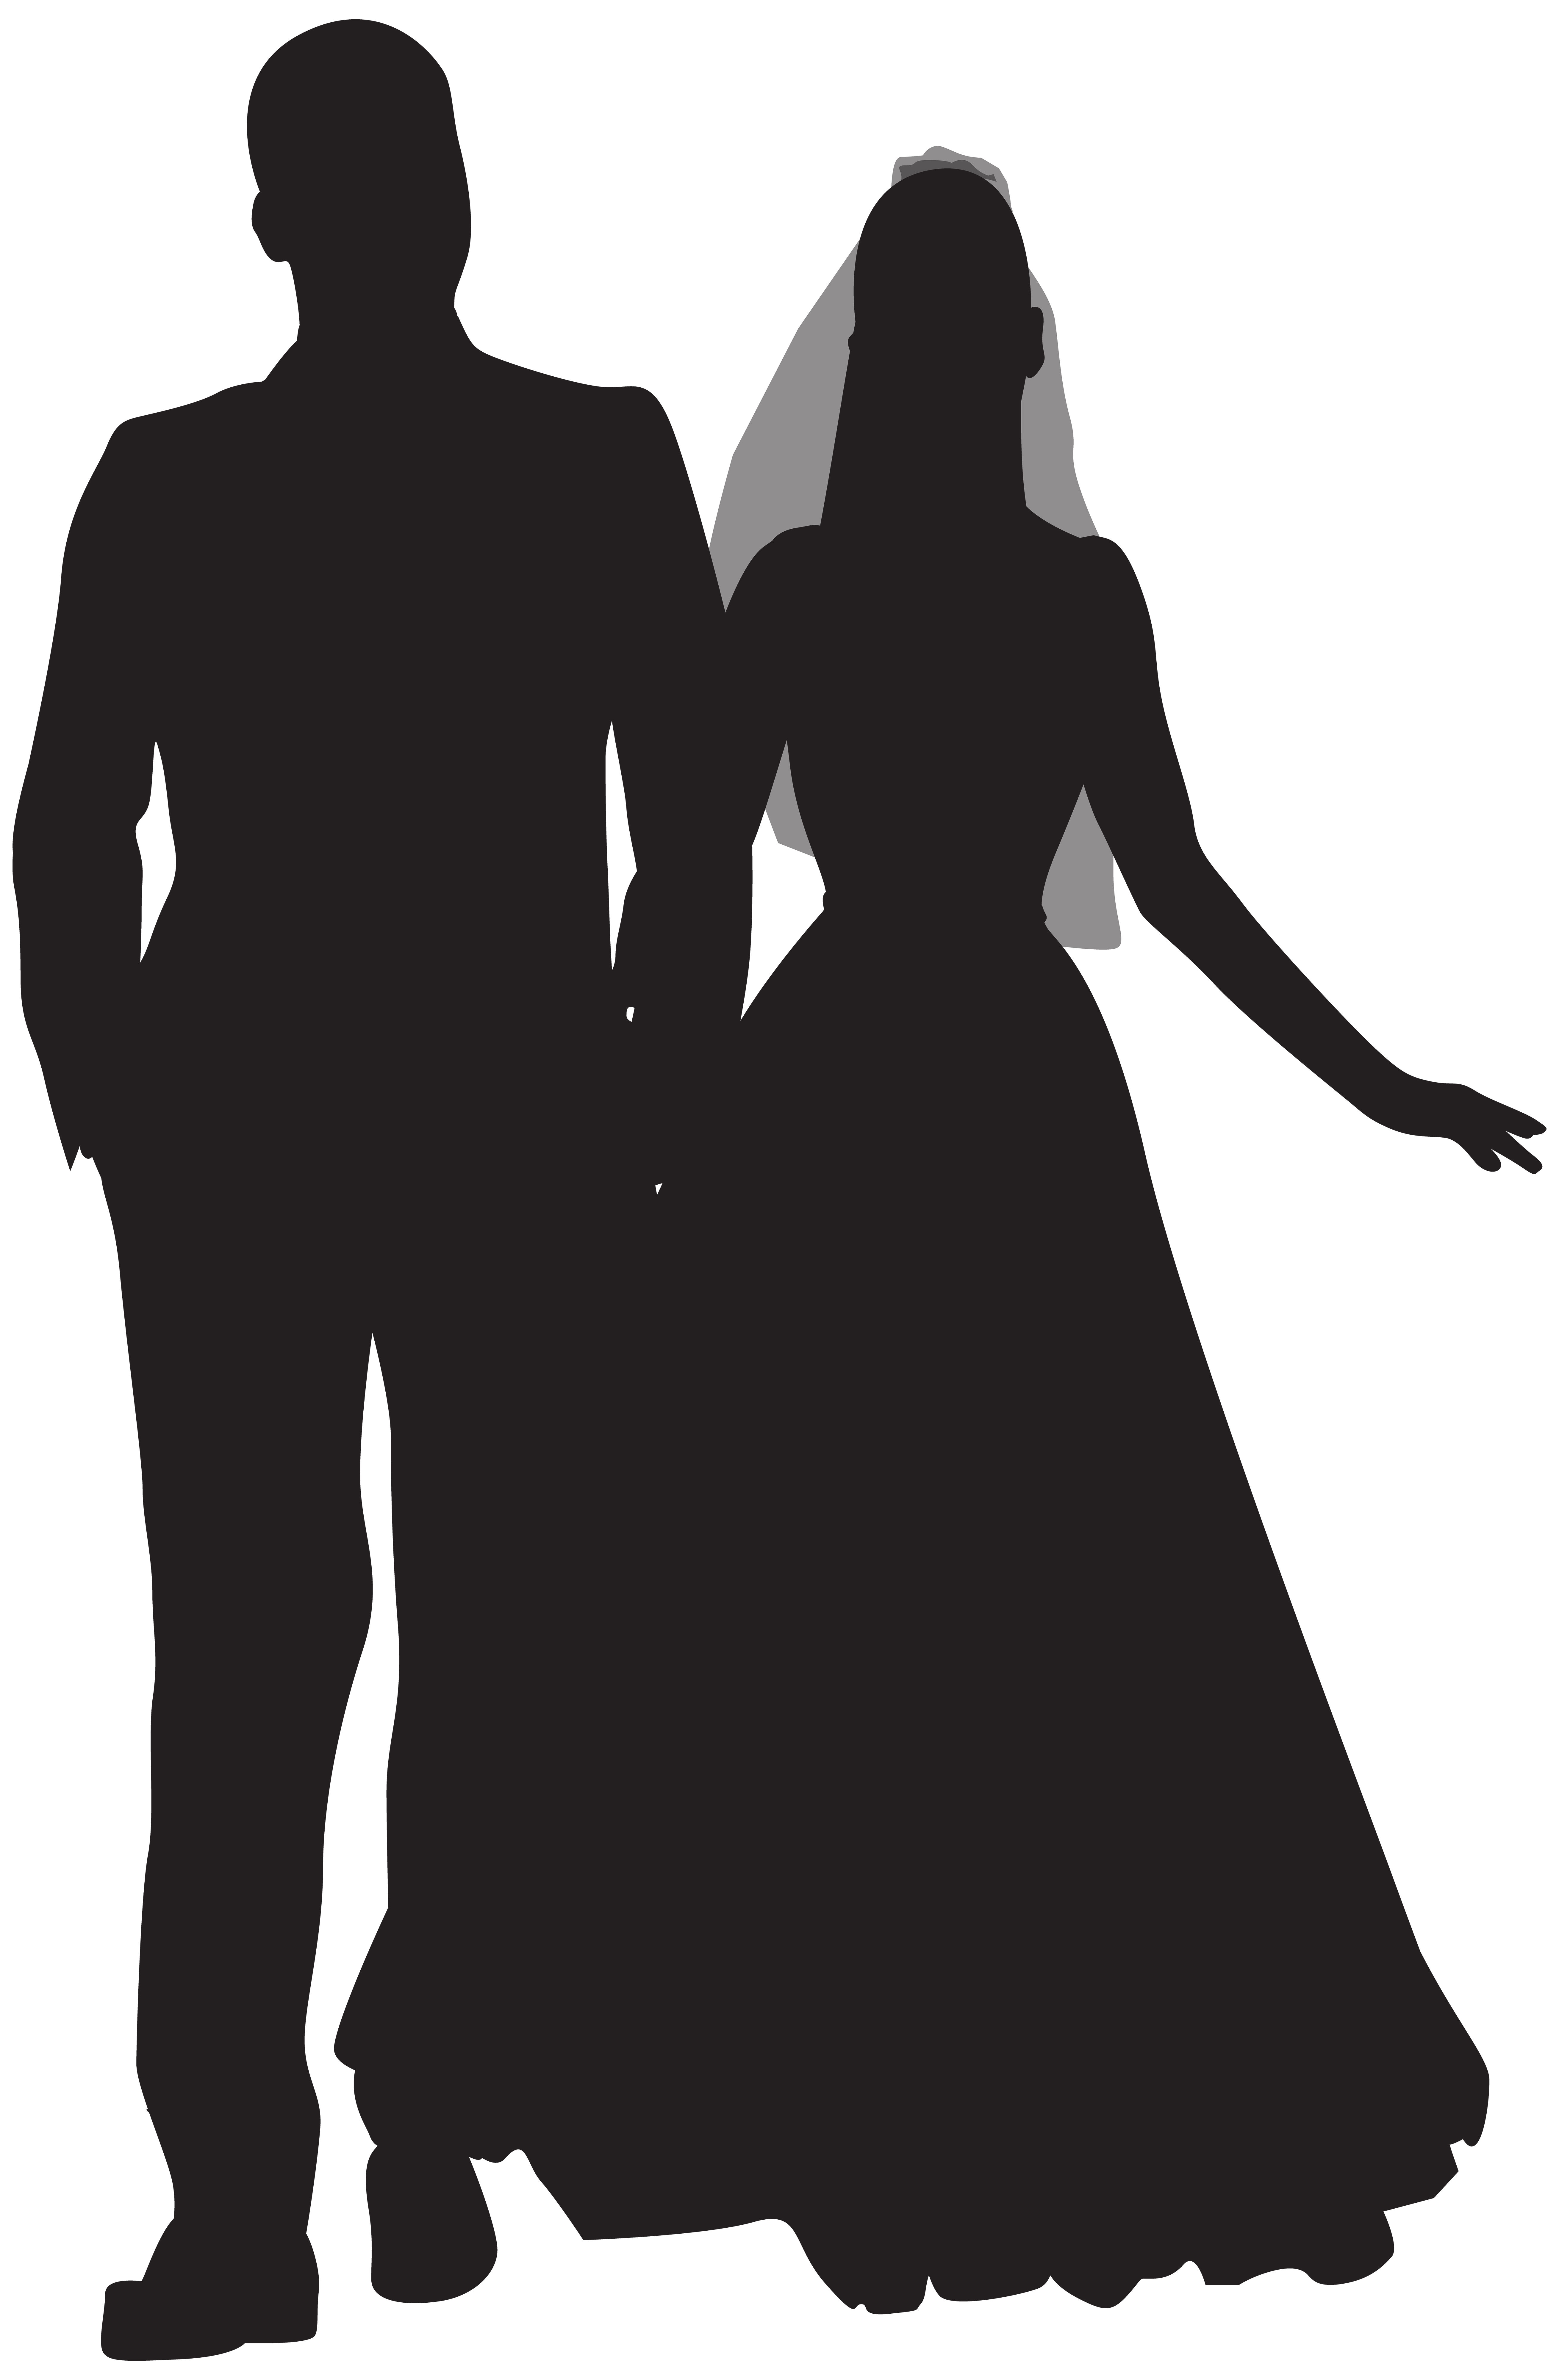 Wedding png silhouette clip. Couple clipart married couple